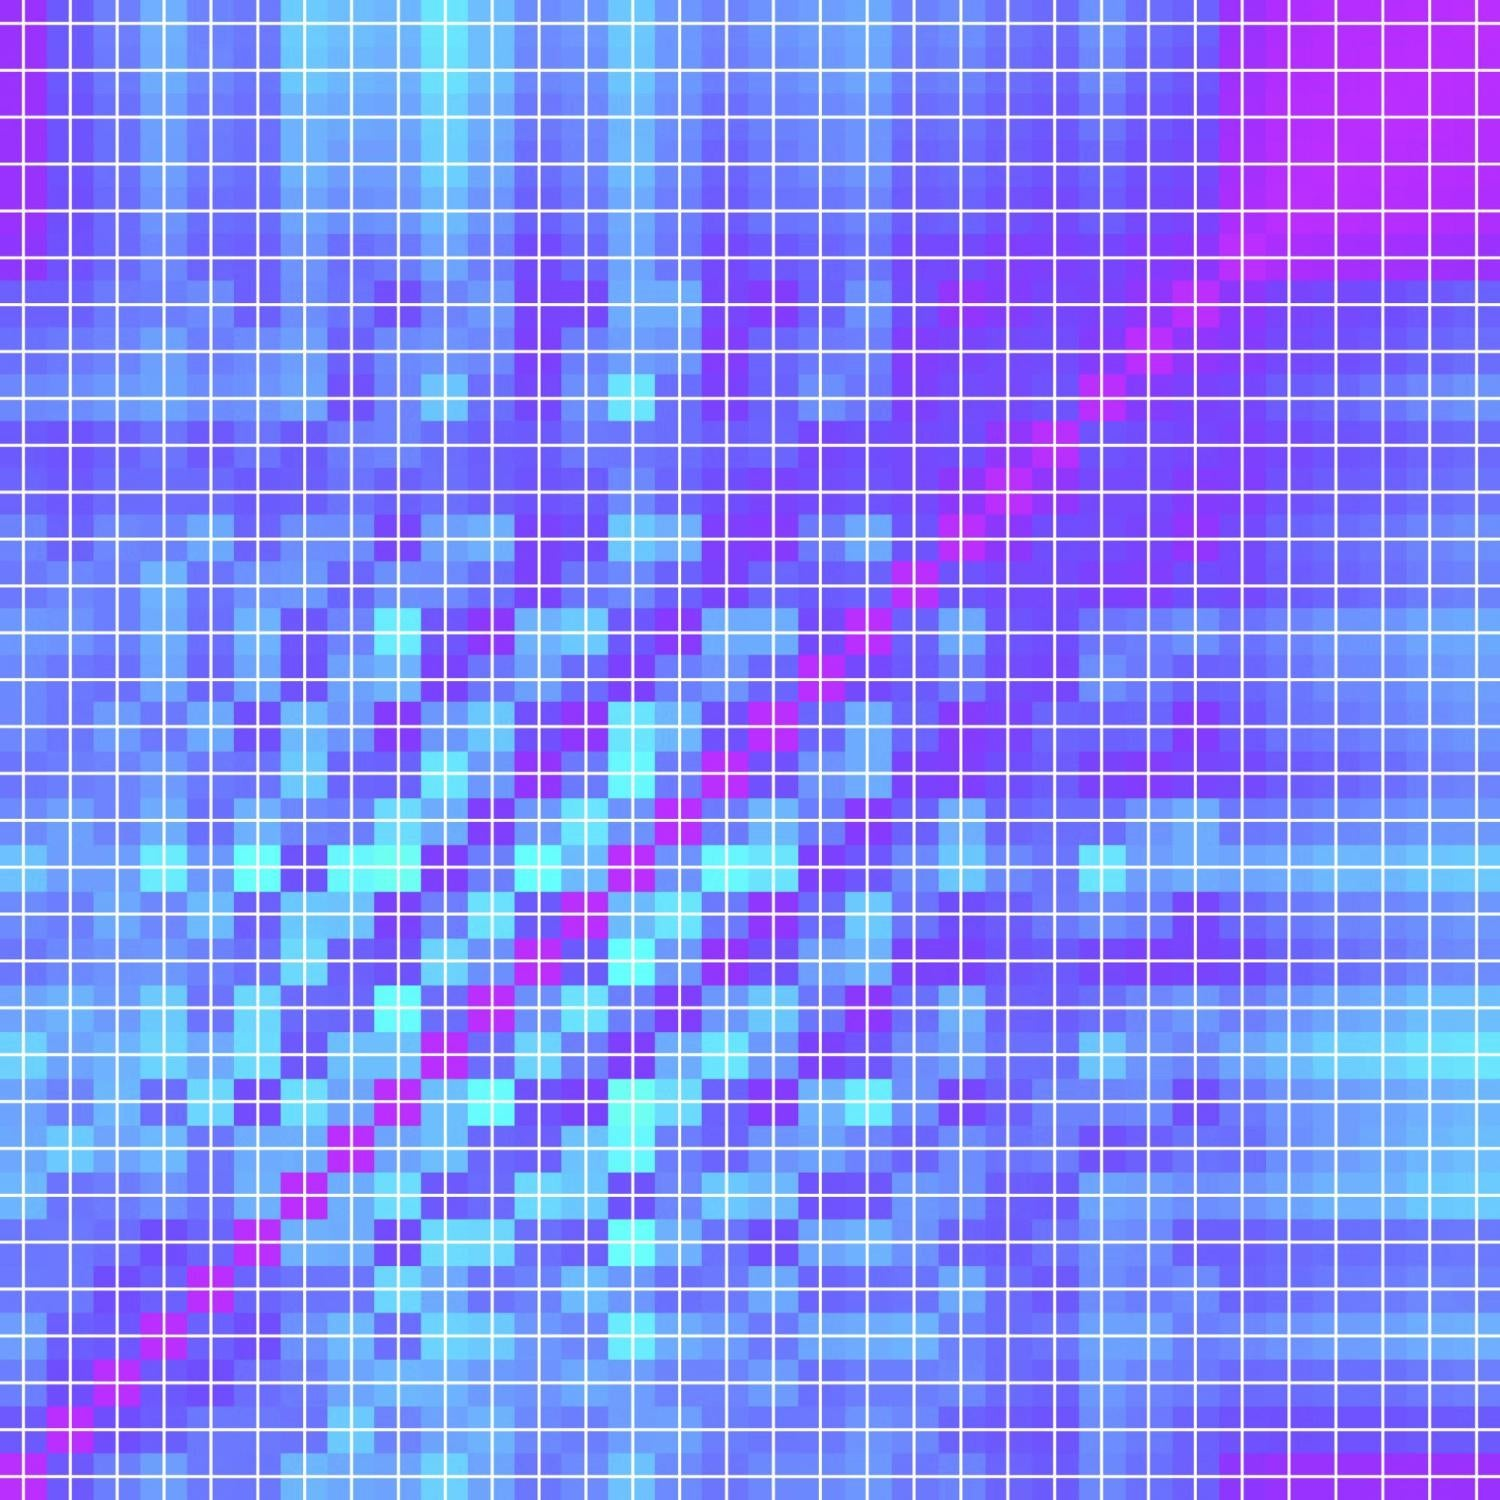 blue and pink squares with white grid overlayed